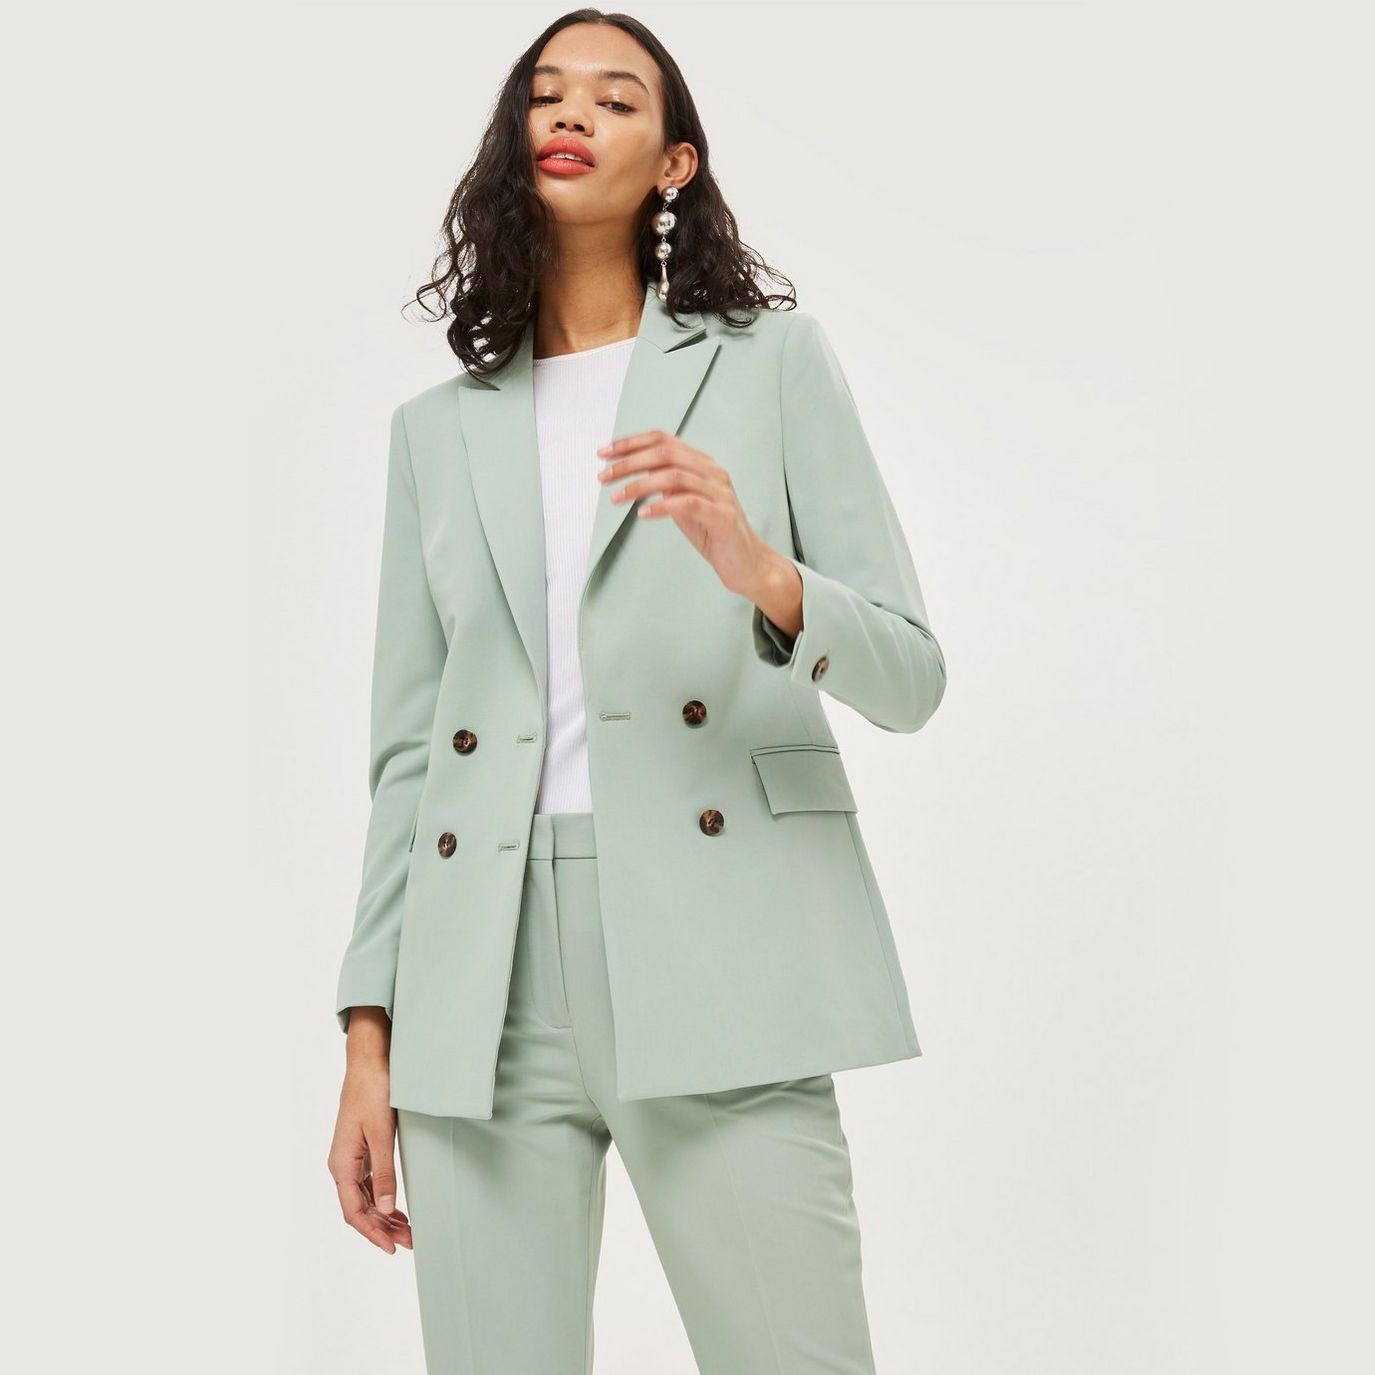 Topshop Wedding Guest Outfit Wedding Guest Outfit Wedding Guest Outfit Spring